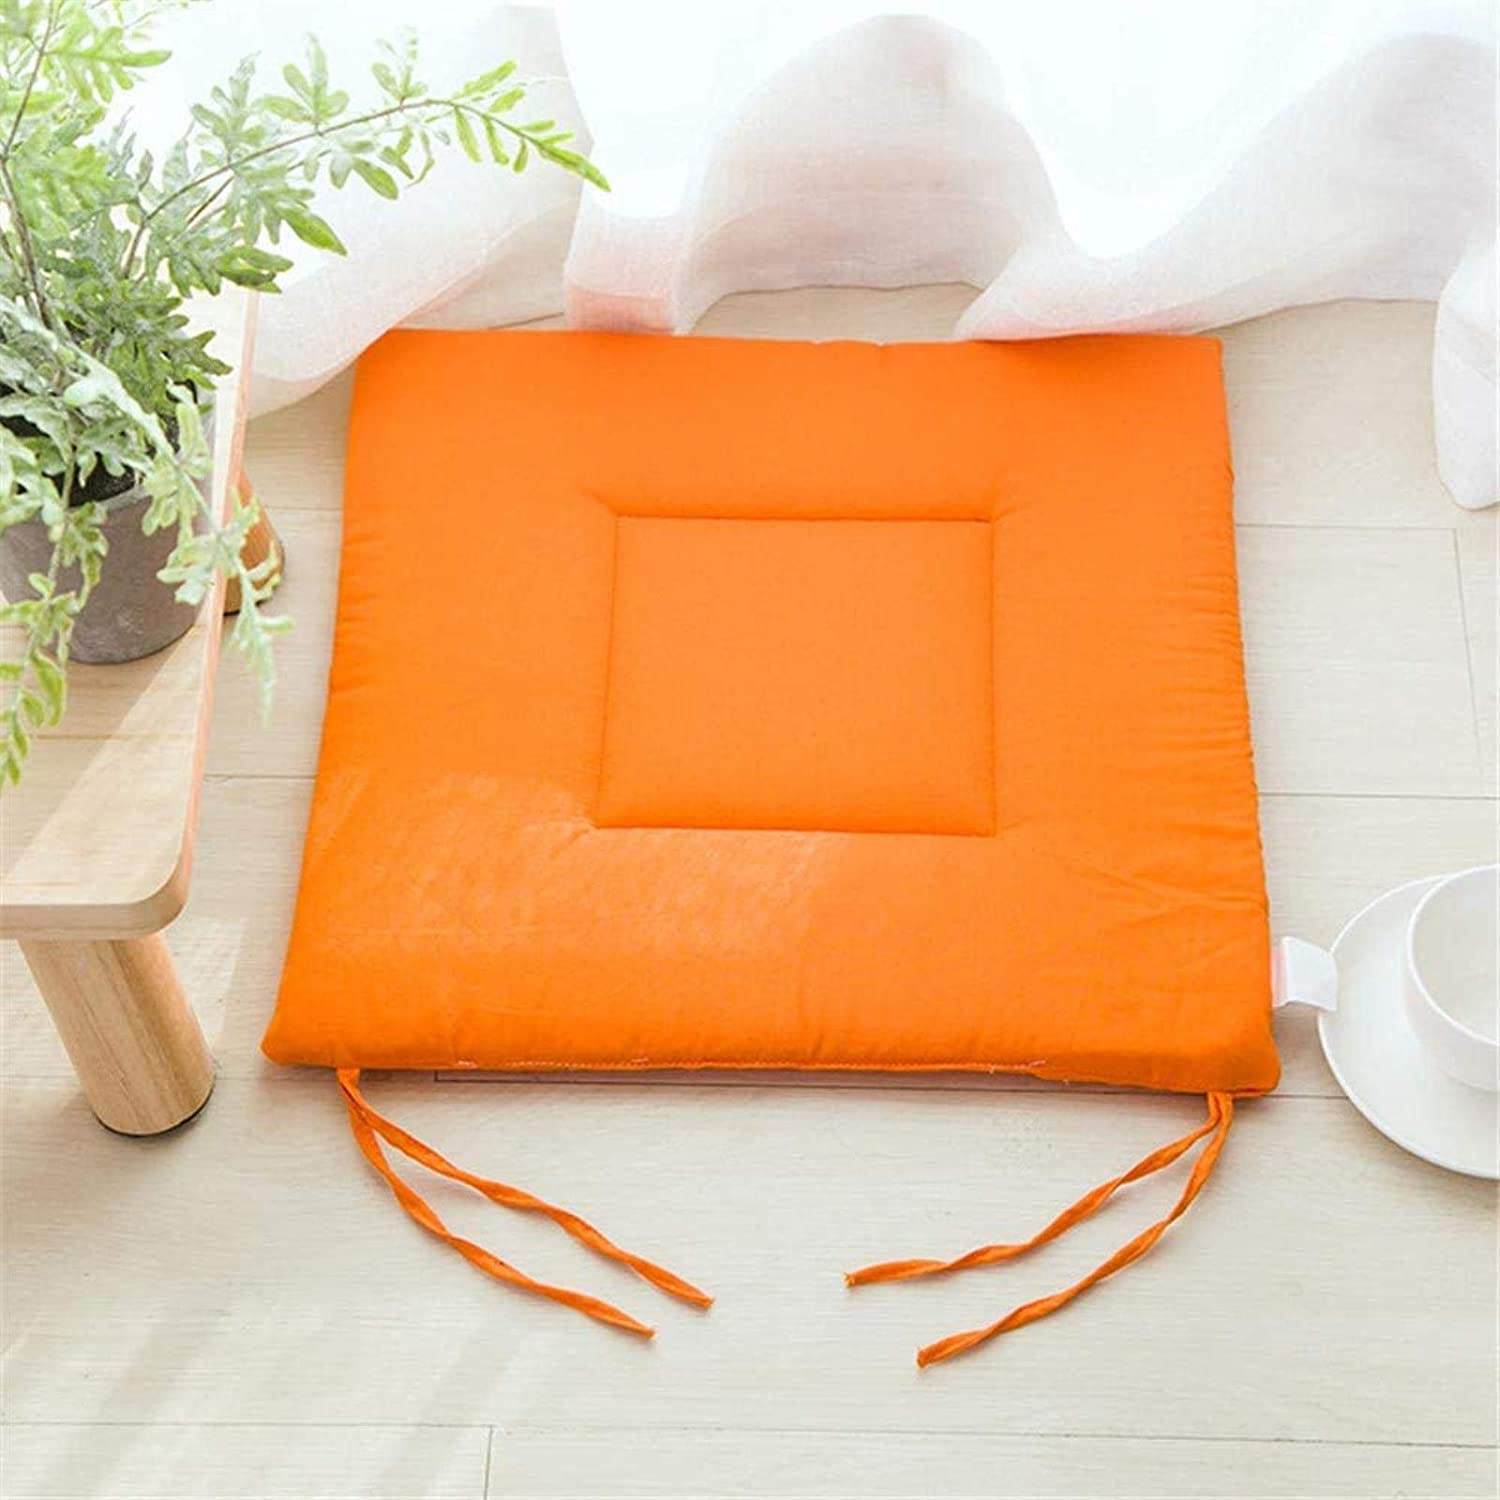 RGRE 送料込 Chair Cushions Set of 4 with SALE開催中 for Attac Cushion Chairs Seat